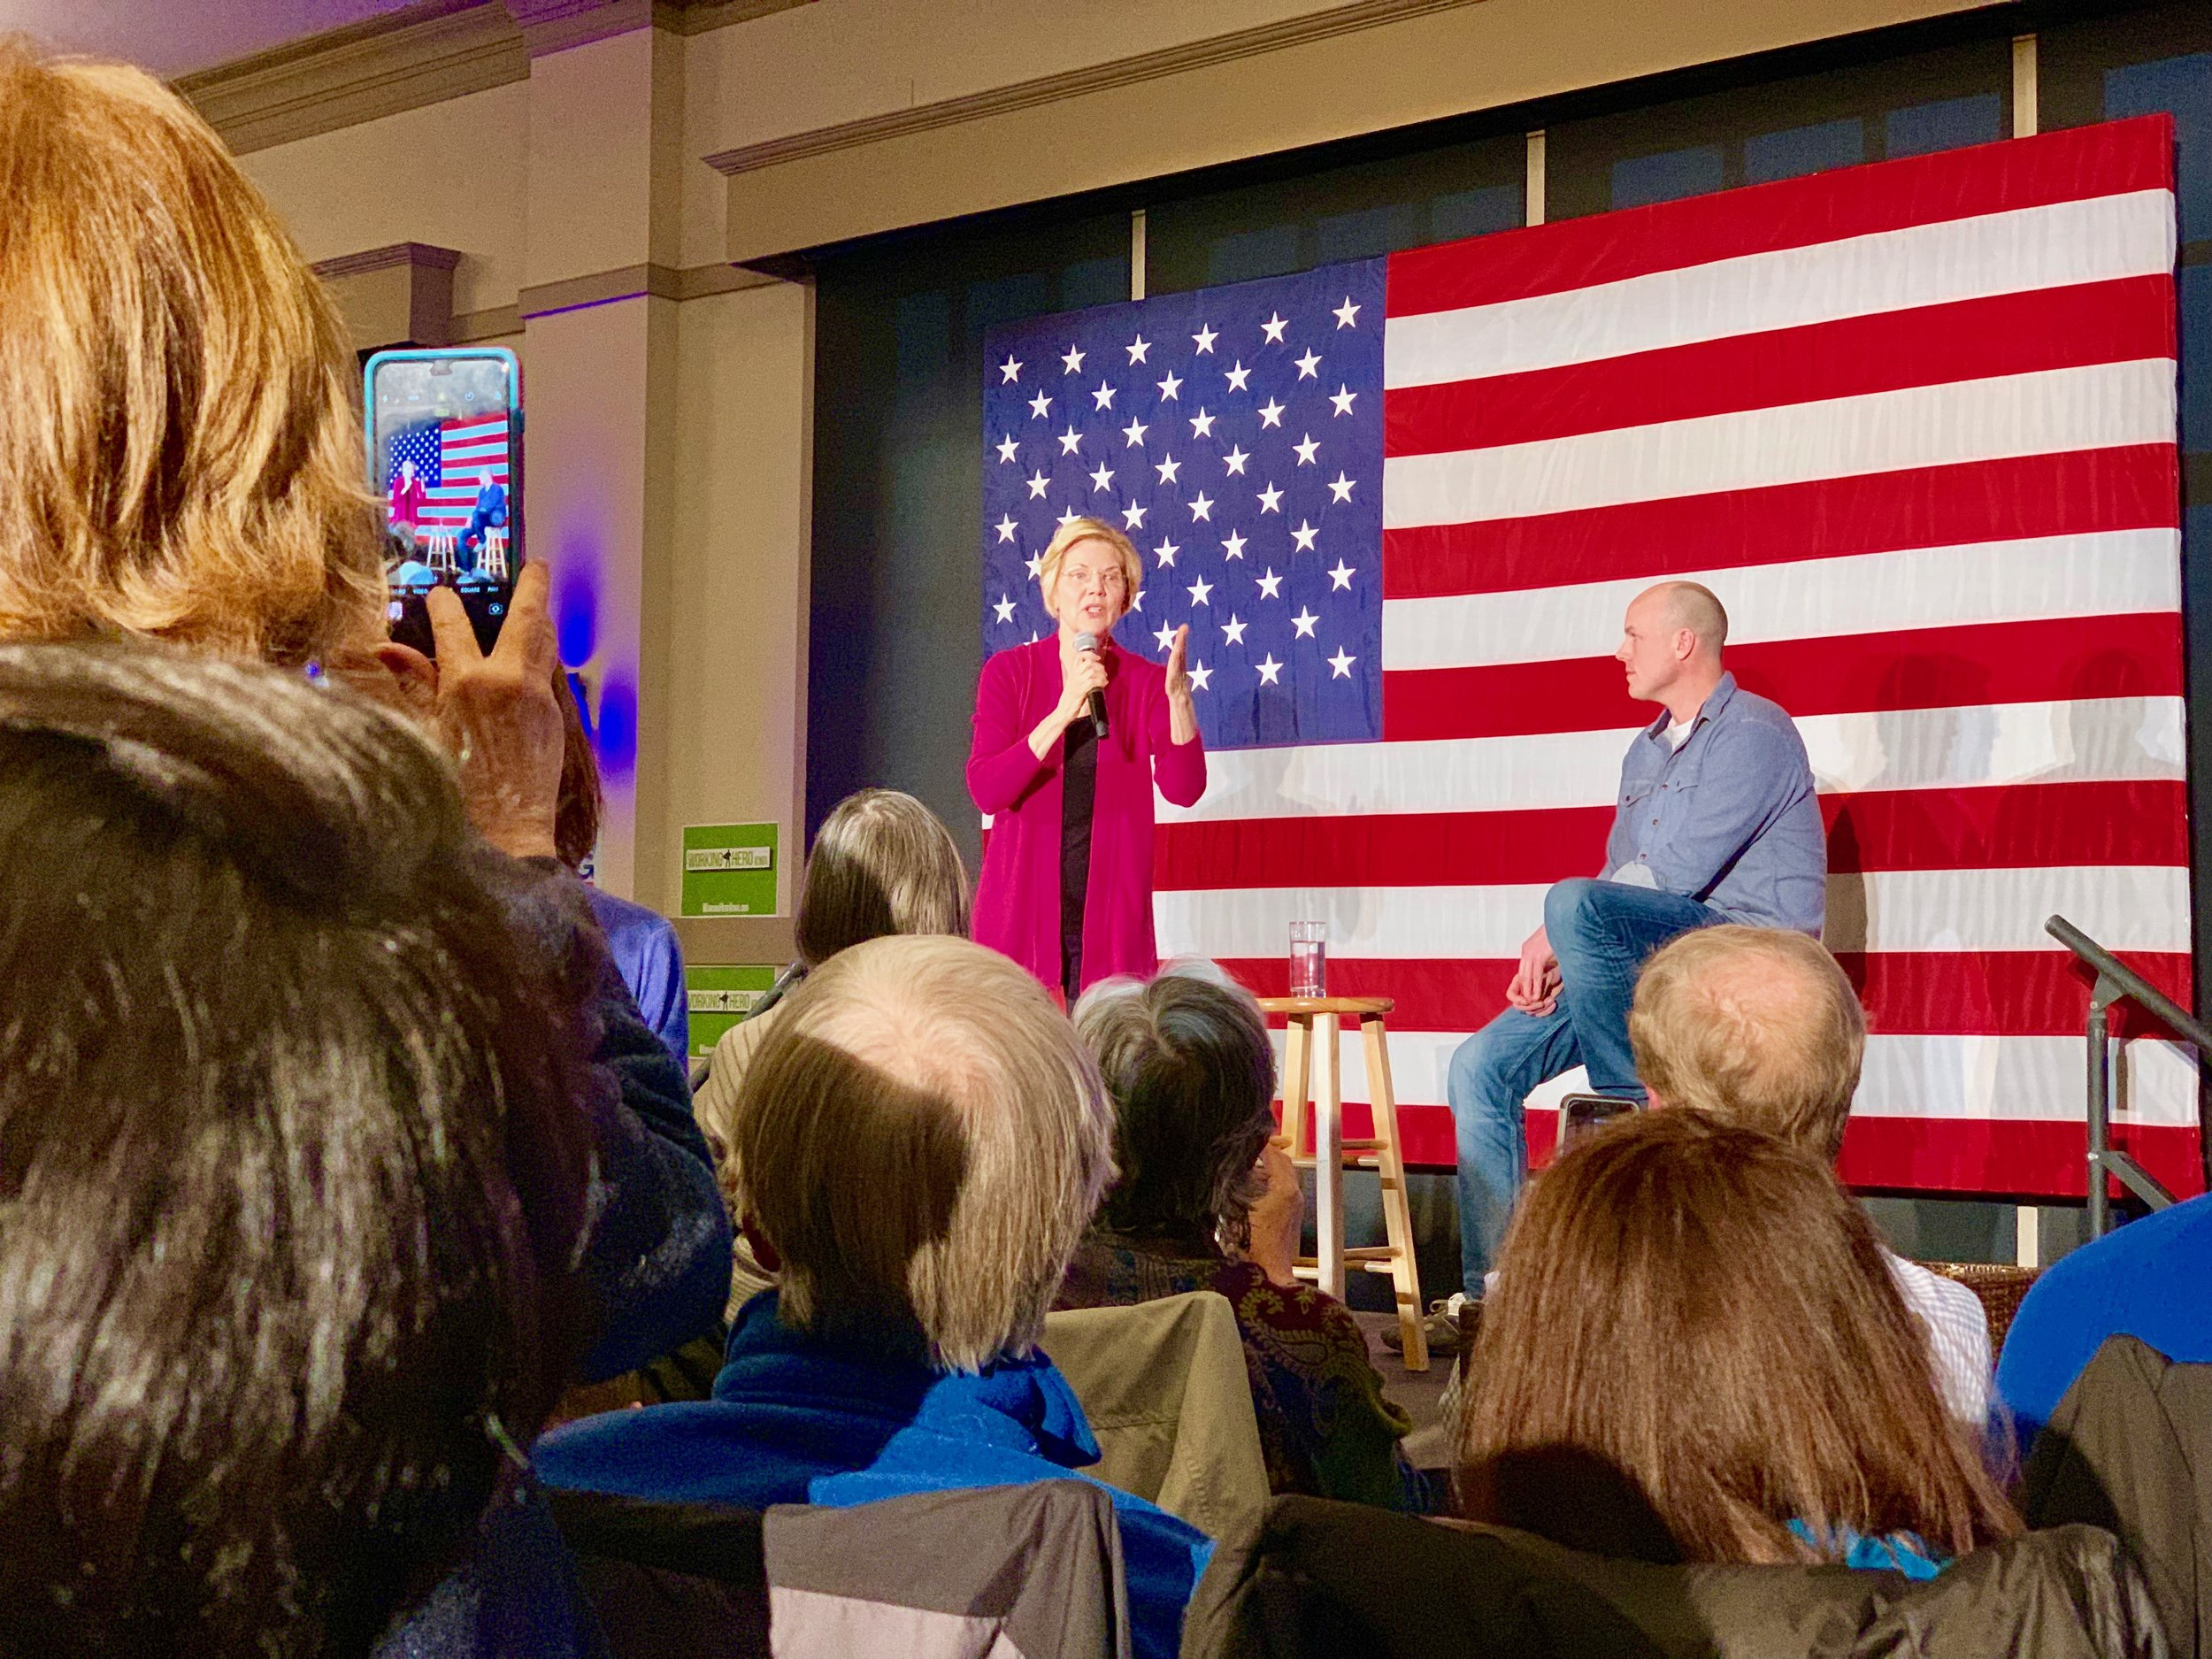 Senator Elizabeth Warren joins Working Hero Iowa director J.D. Scholten for an event in West Des Moines.